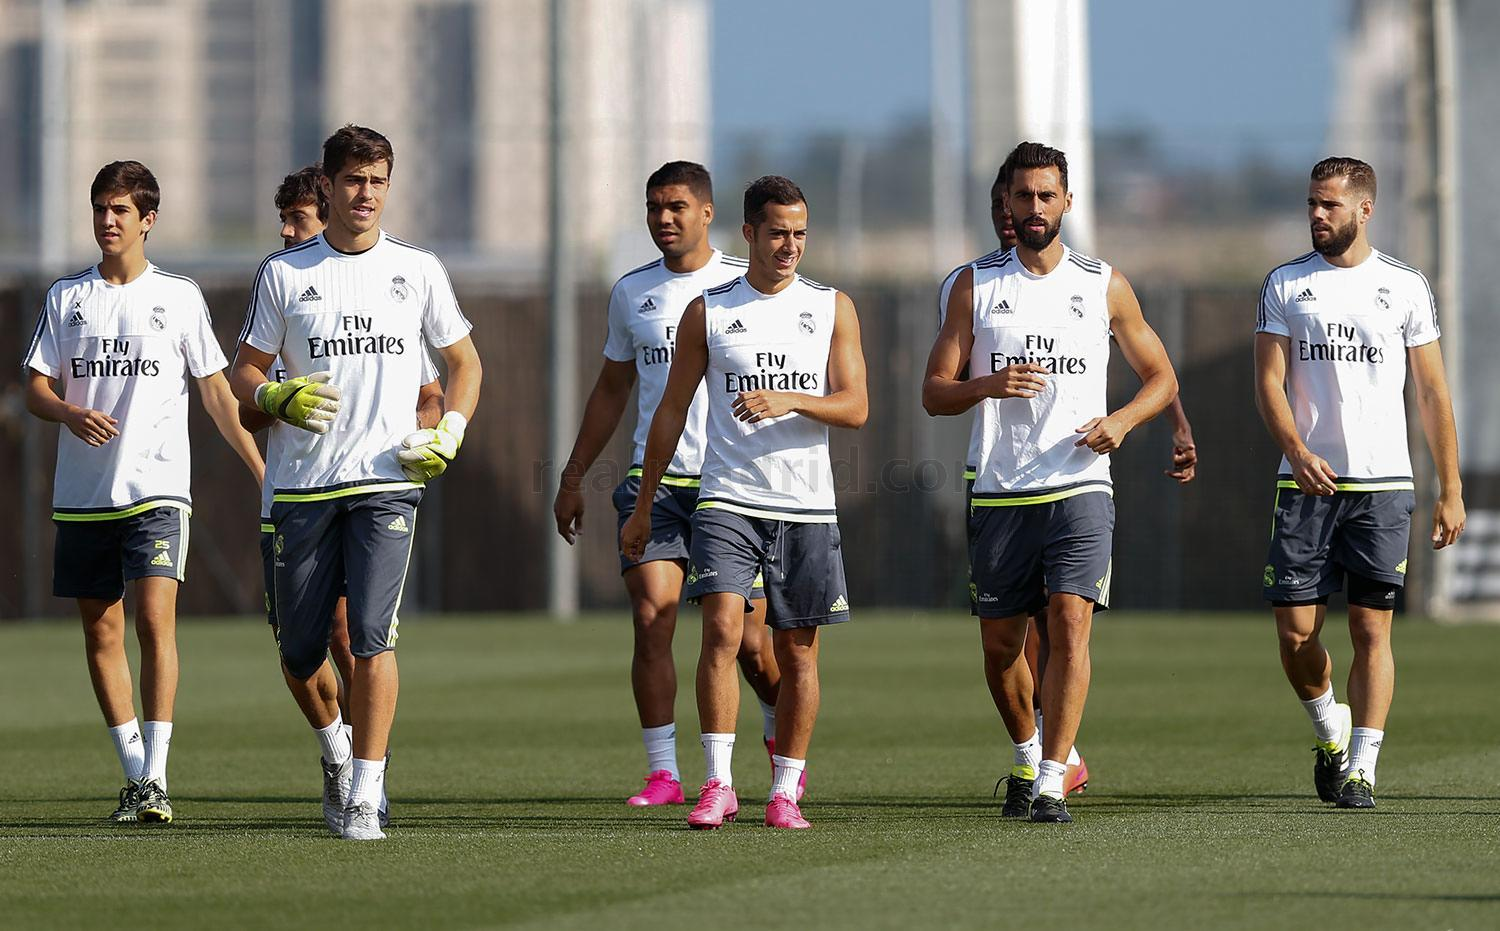 Real Madrid - Entrenamiento del Real Madrid - 04-09-2015